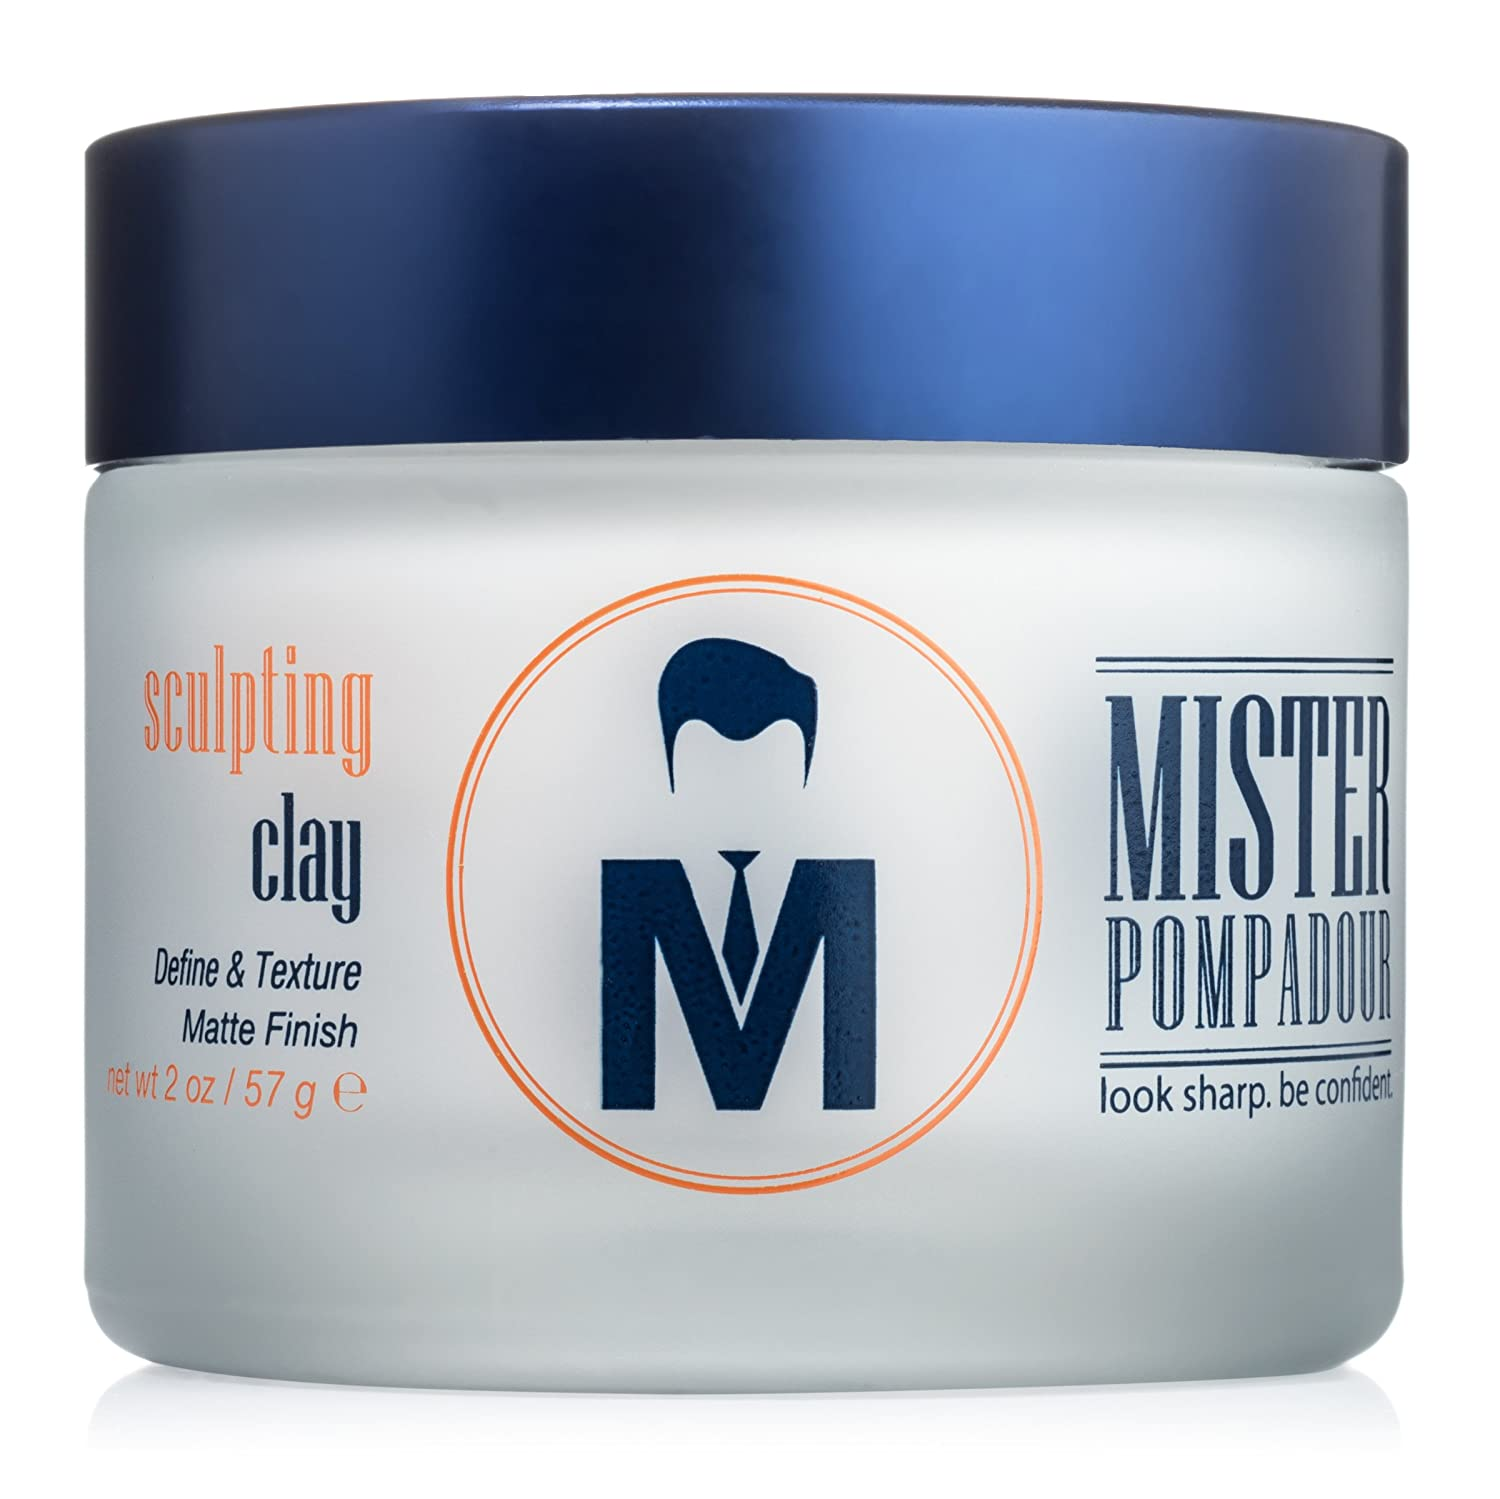 Mister Pompadour Sculpting Clay | Clay Pomade For Men And Women | Matte Finish | Volume & Hold For Straight, Thick, Curly, Or Fine Hair | Natural... by Mister Pompadour